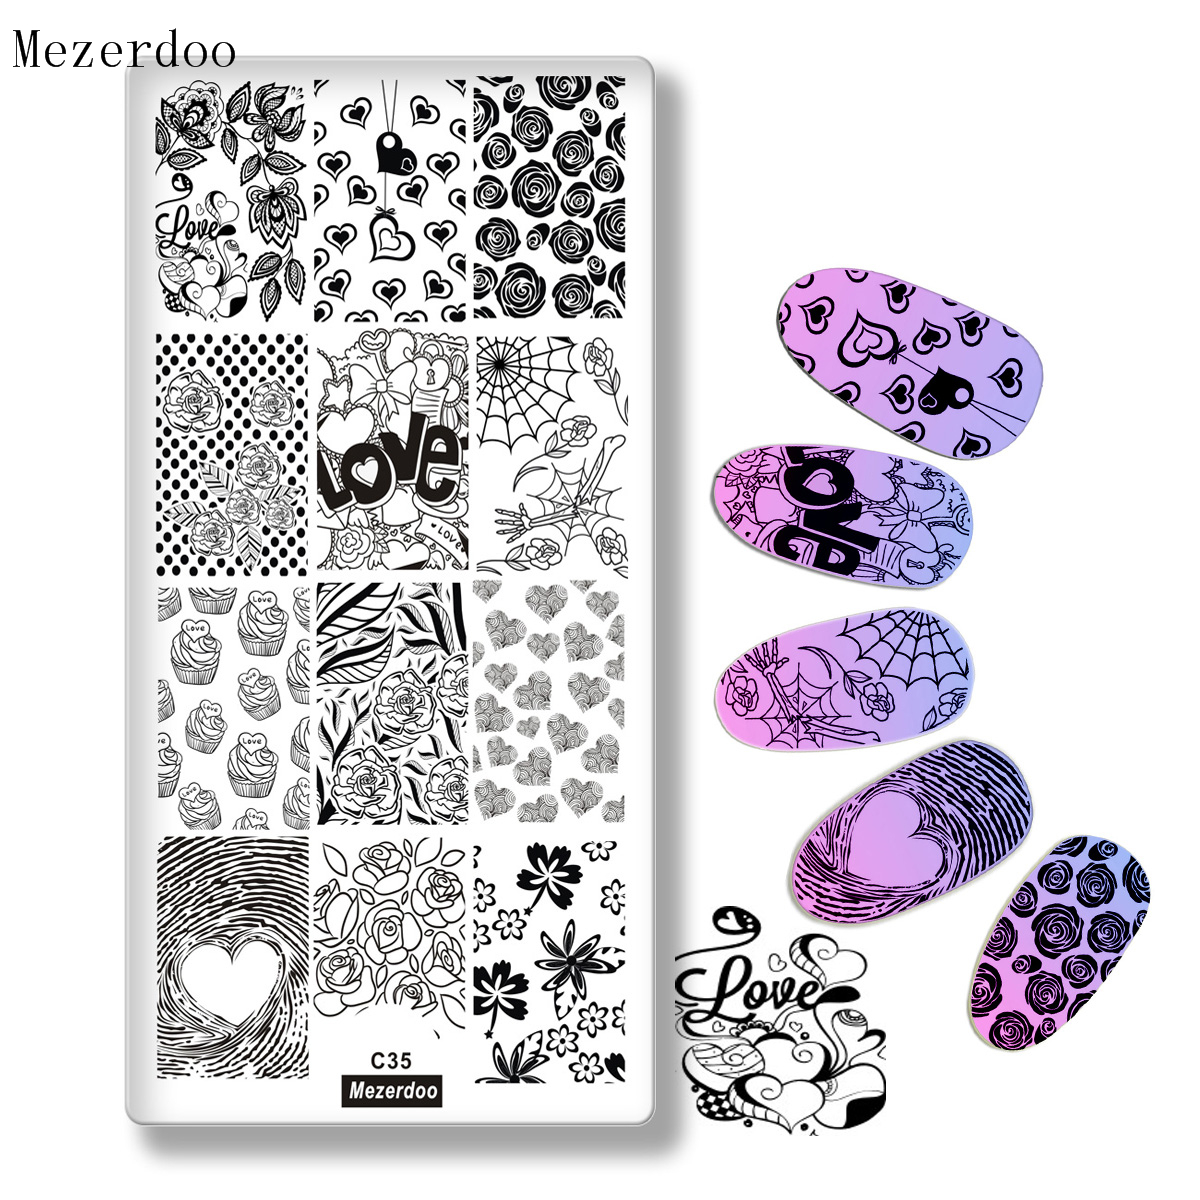 Love Valentine 39 s Day Pattern Stamping Plate Rose Spider Webs Design DIY Nail Art Stamp Image Plate Nail Stencil Tools C35 in Nail Art Templates from Beauty amp Health